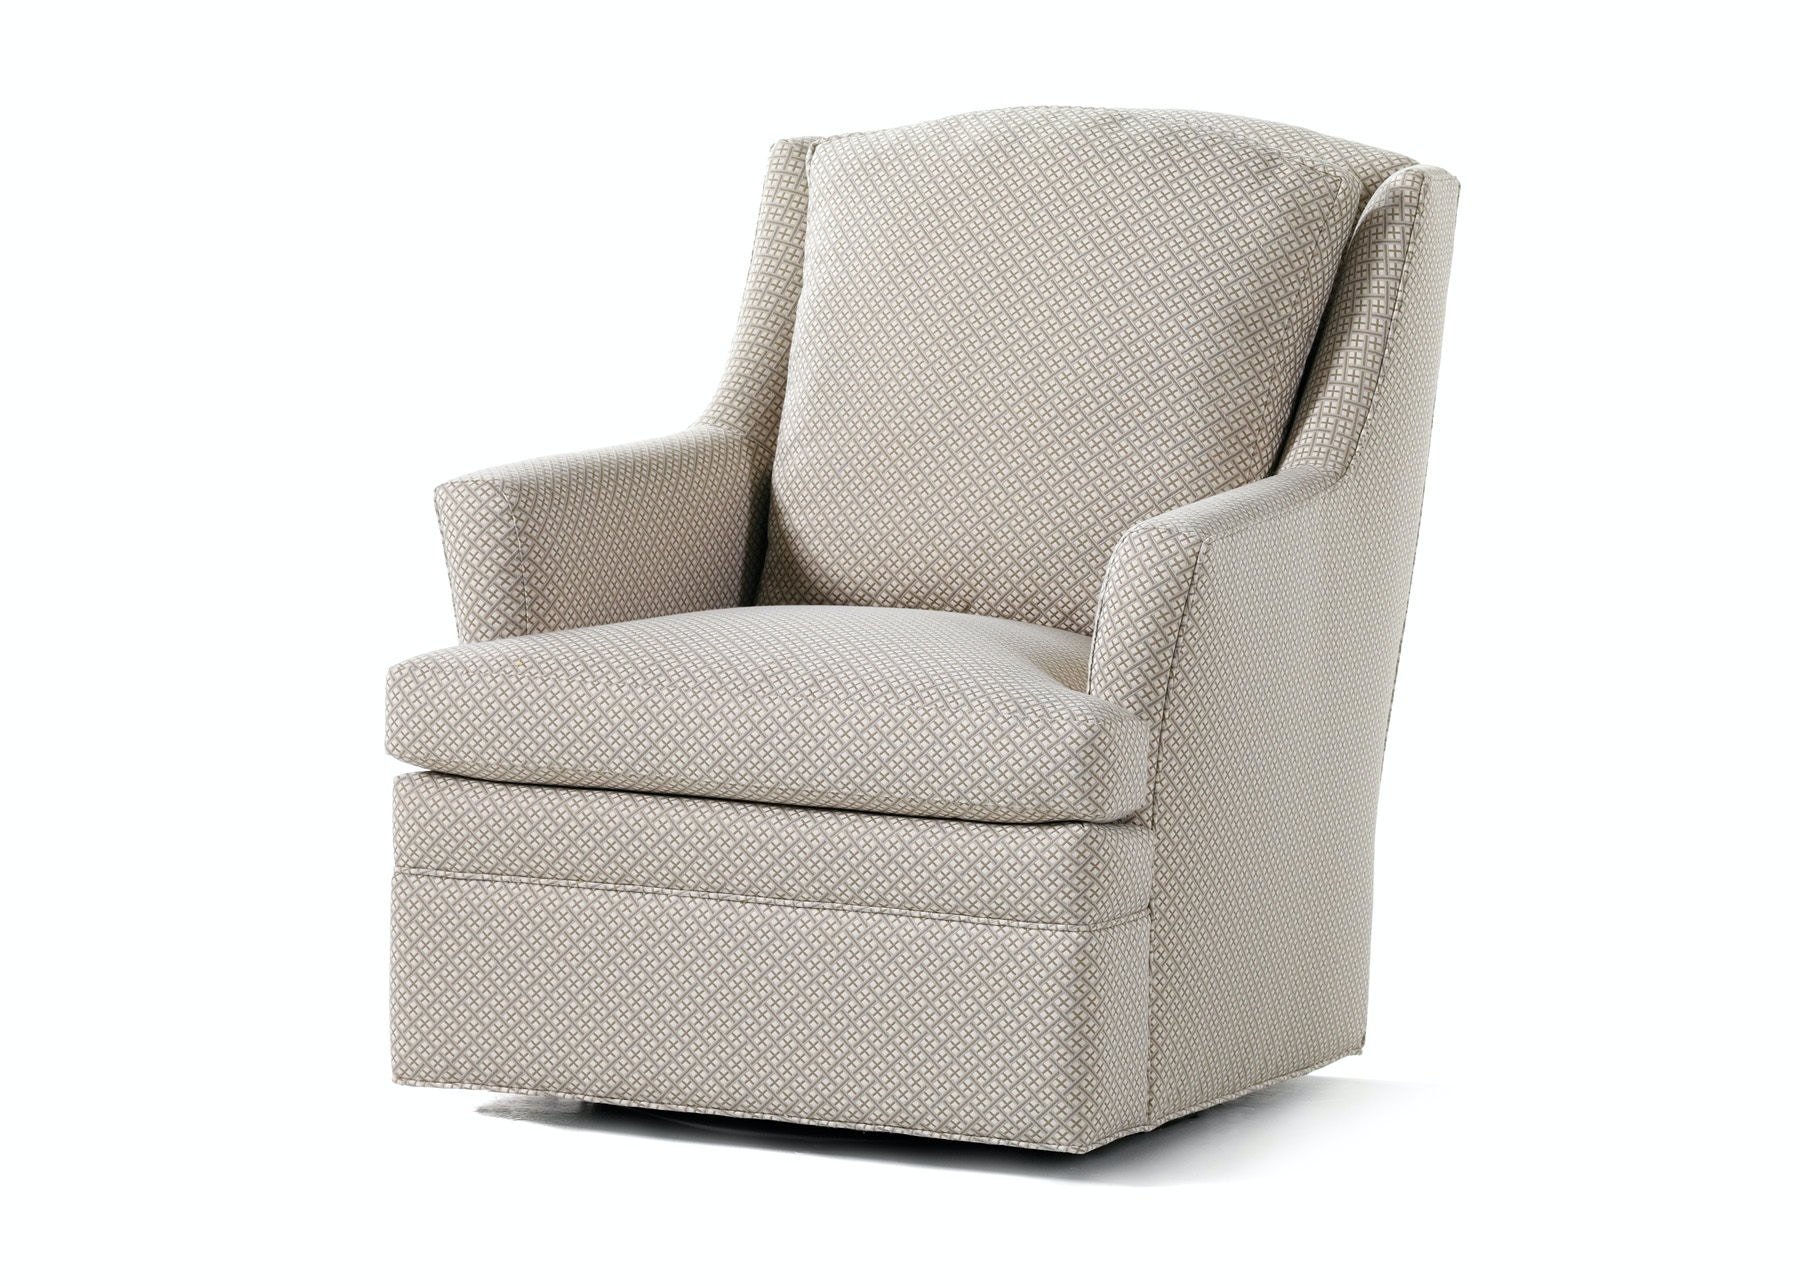 rocker chair sg diy outdoor cushions jessica charles living room cagney swivel 5498 s